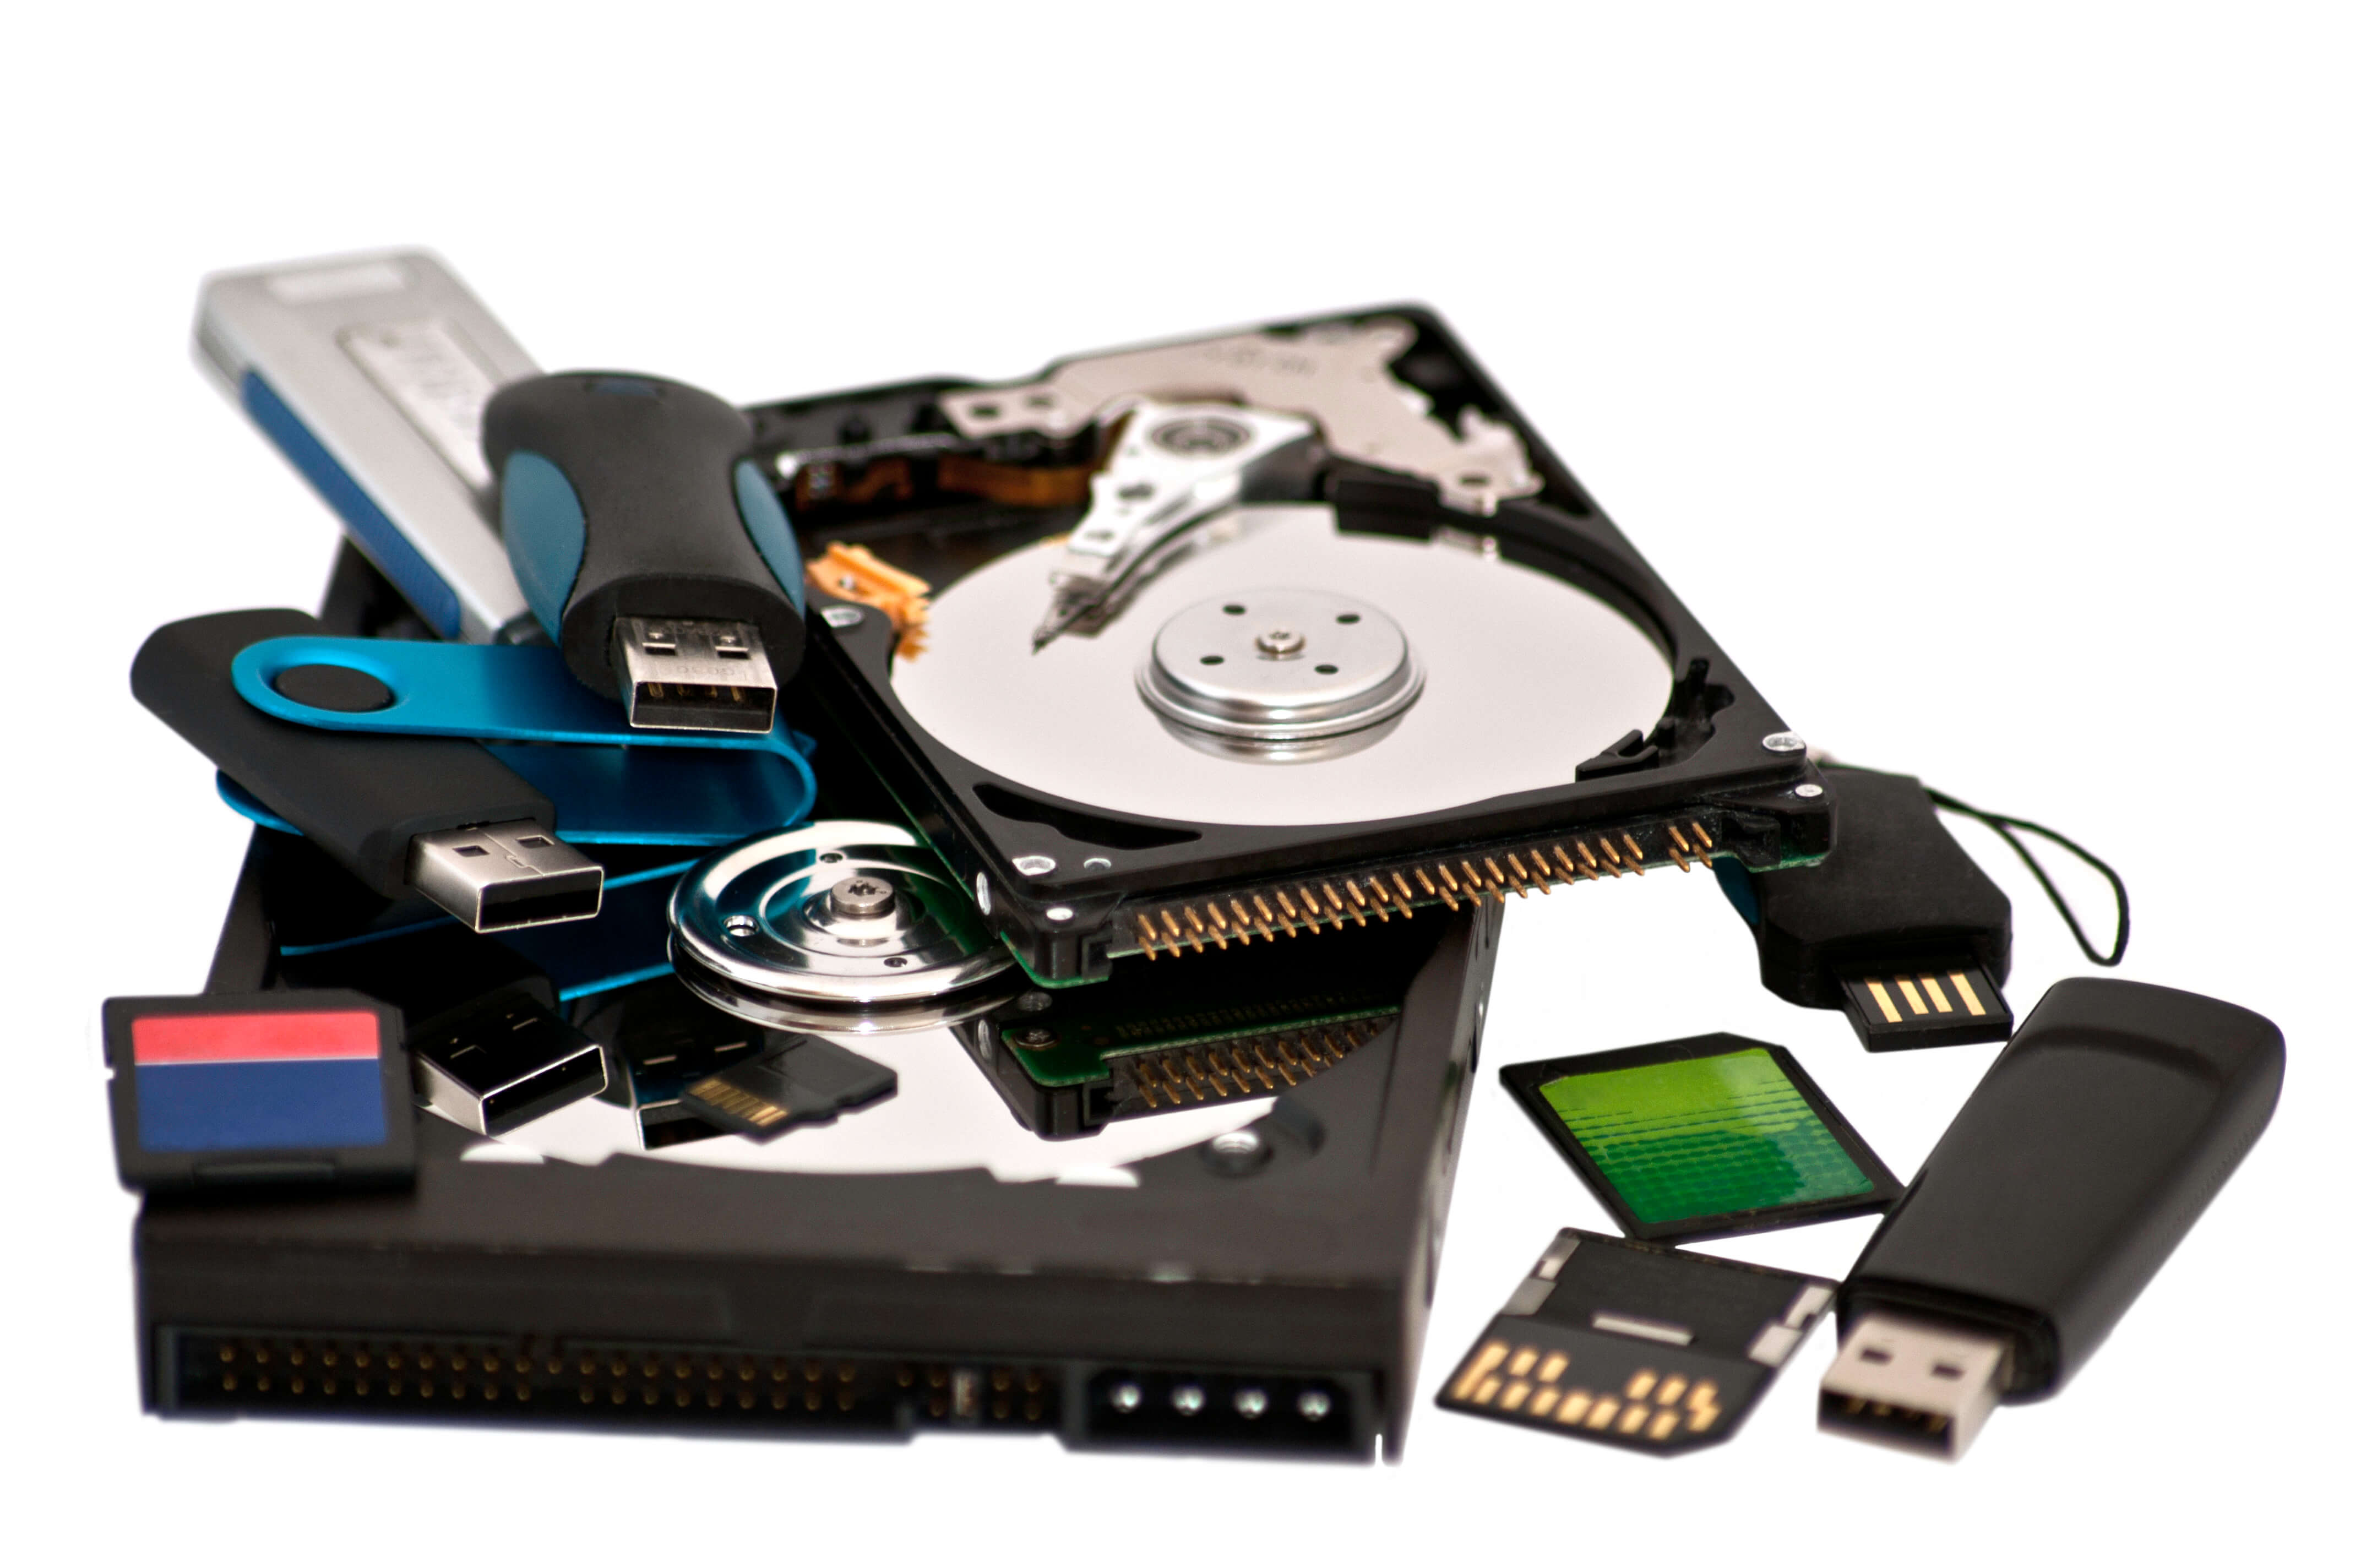 5 Data Backup Method Options for SMB Business Continuity Plans